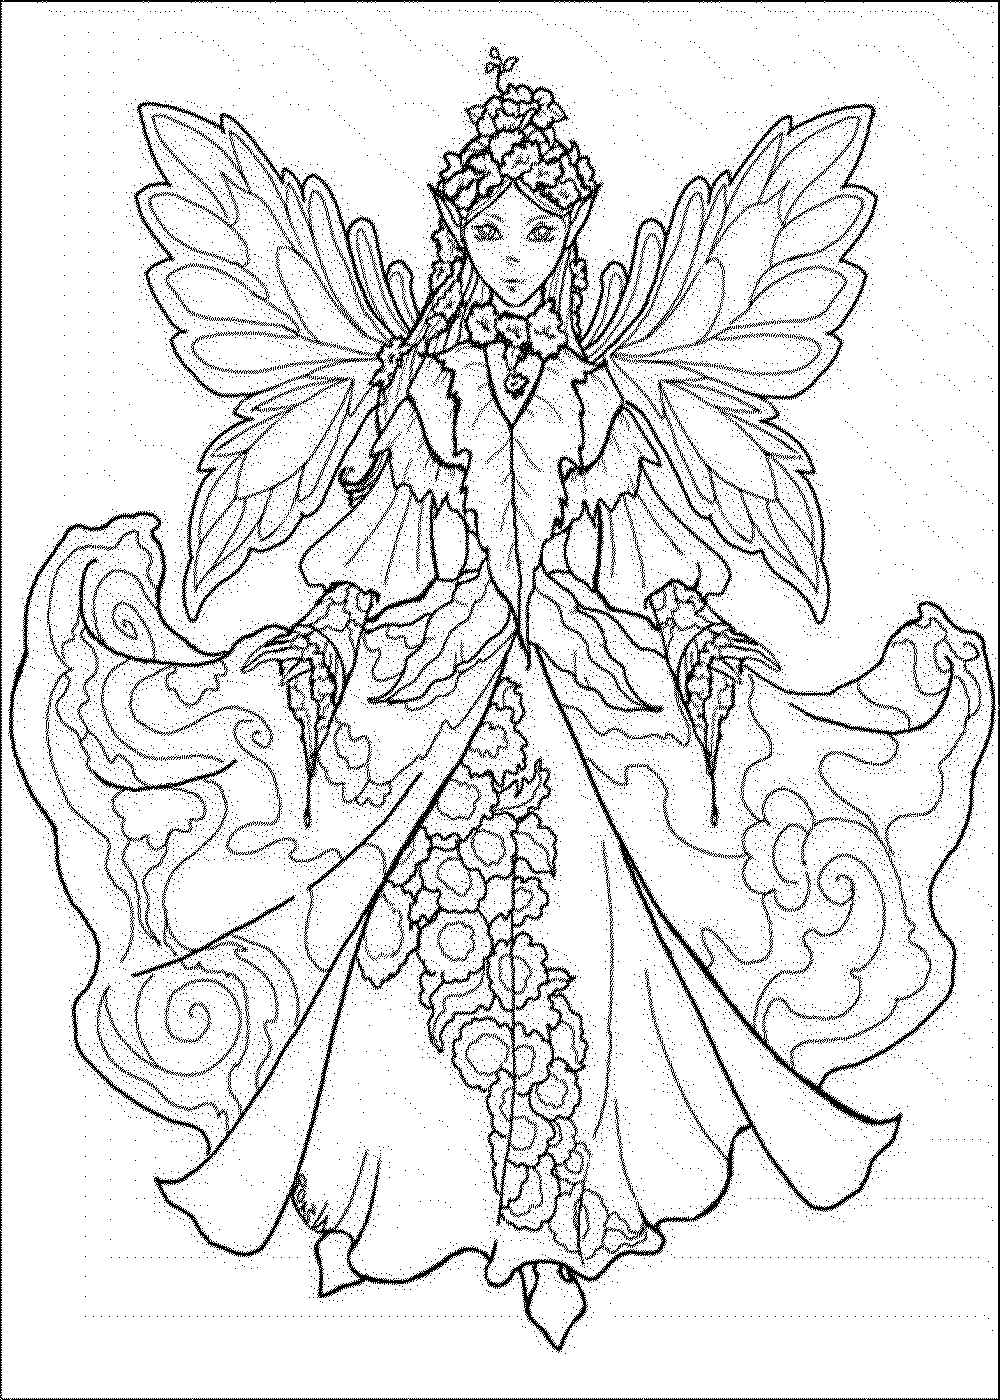 coloring pages of girls realistic pin de gary simmons en coloring libro de colores pages coloring girls of realistic